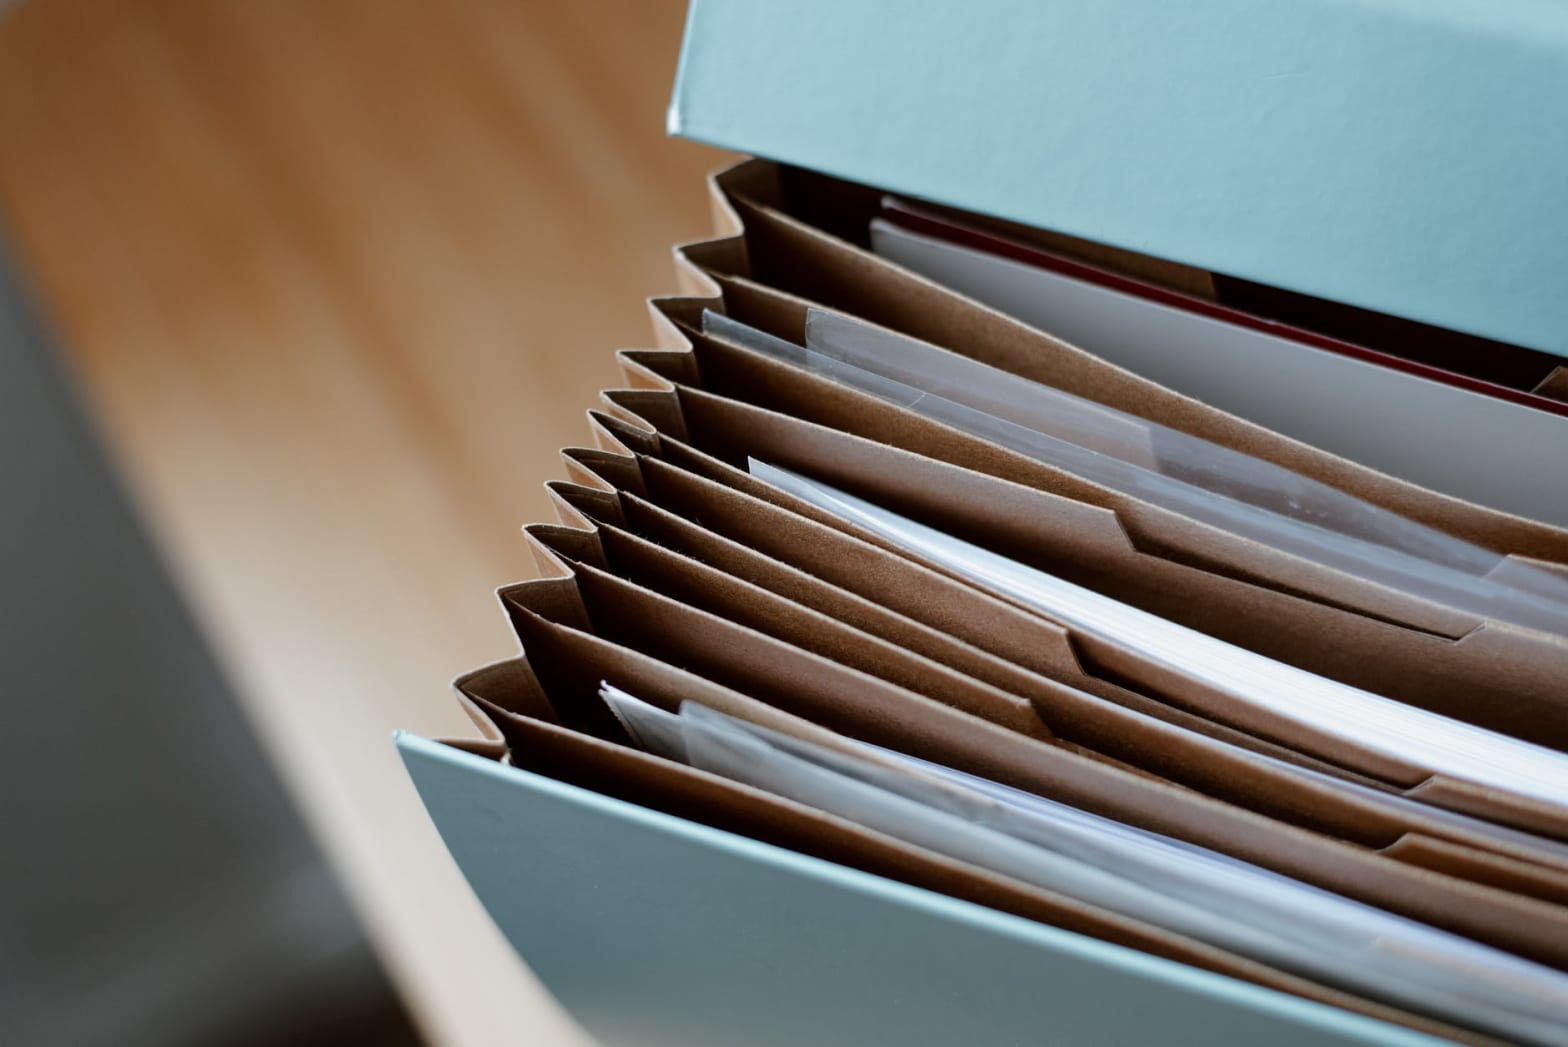 opened folder for documents on table